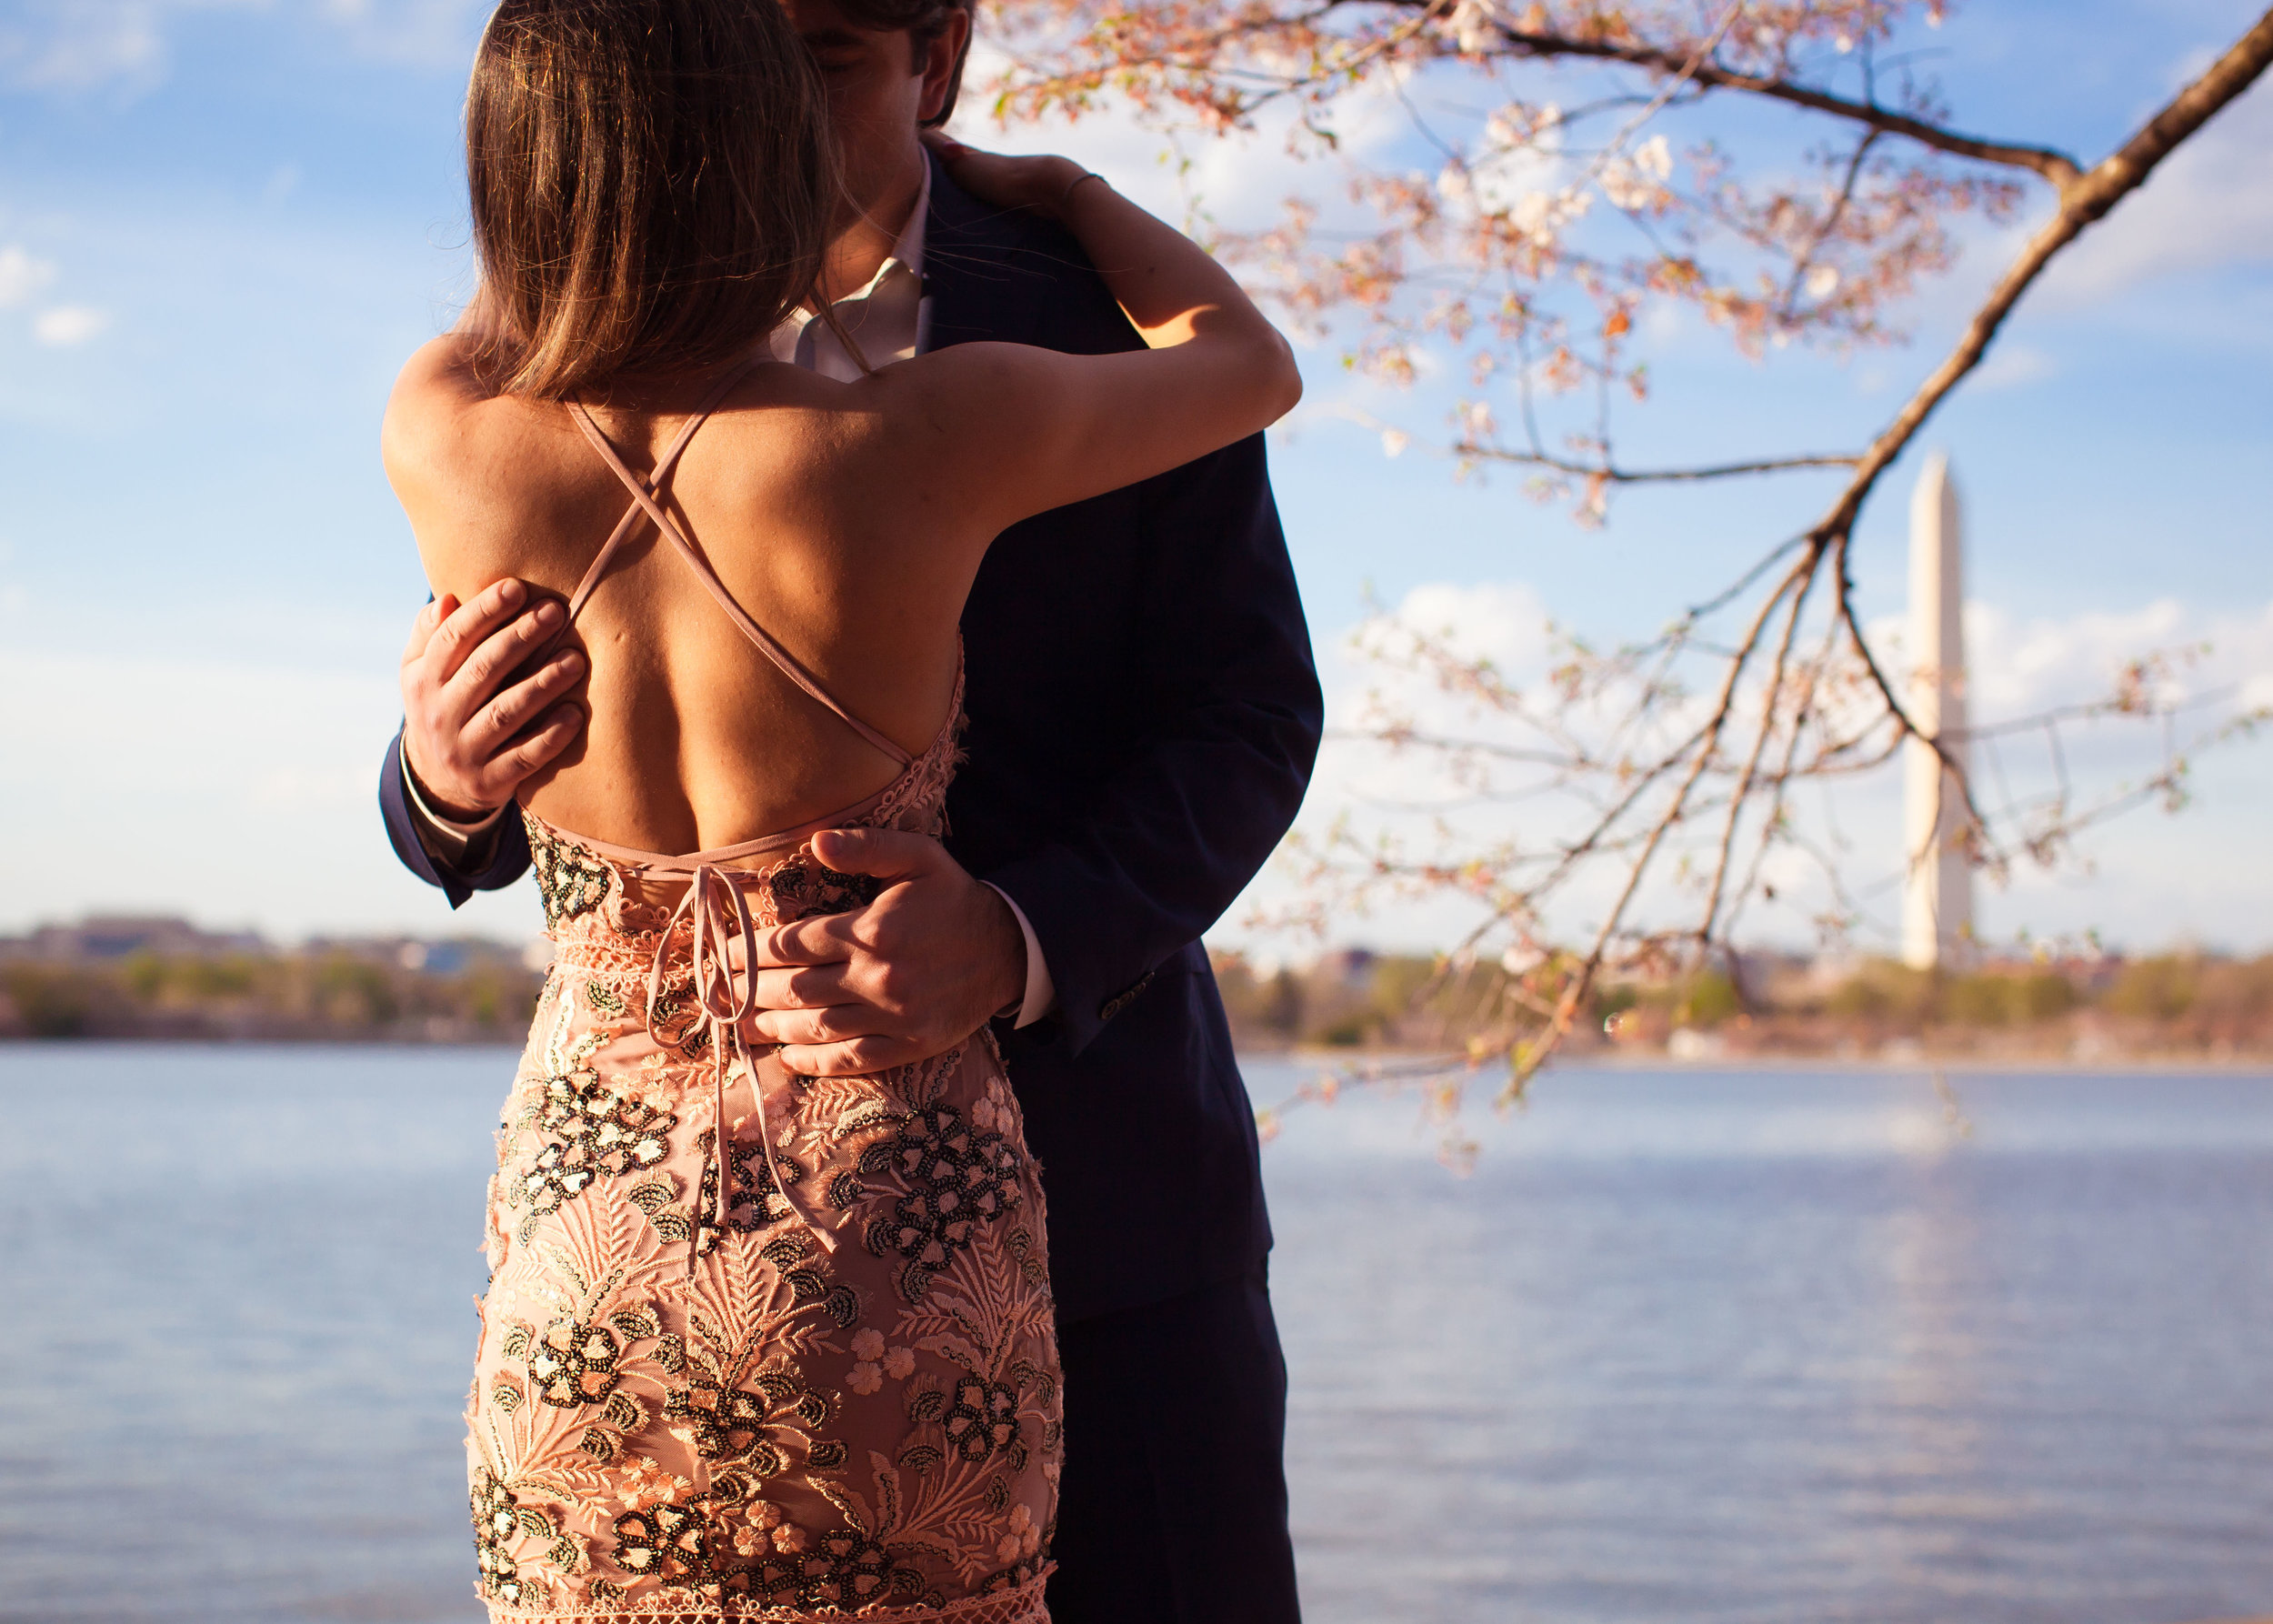 Hannah & Joe Cherry Blossom Engagement - 006.jpg